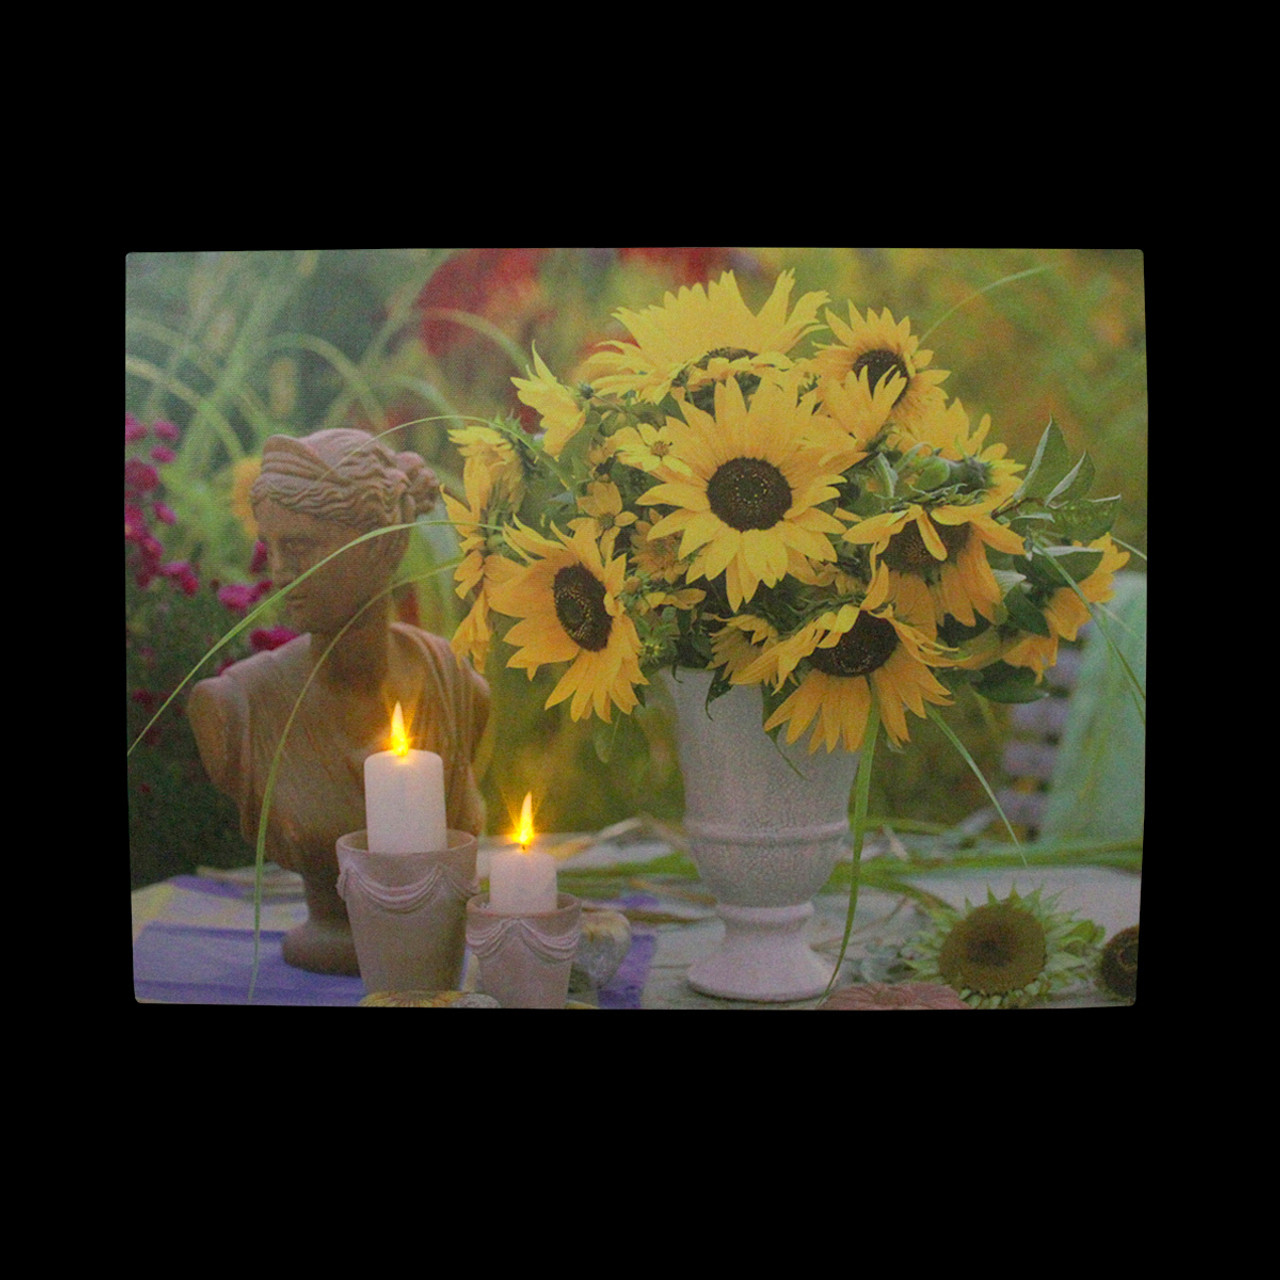 LED Lighted Flickering Garden Candles & Sunflower Vase Canvas Wall ...